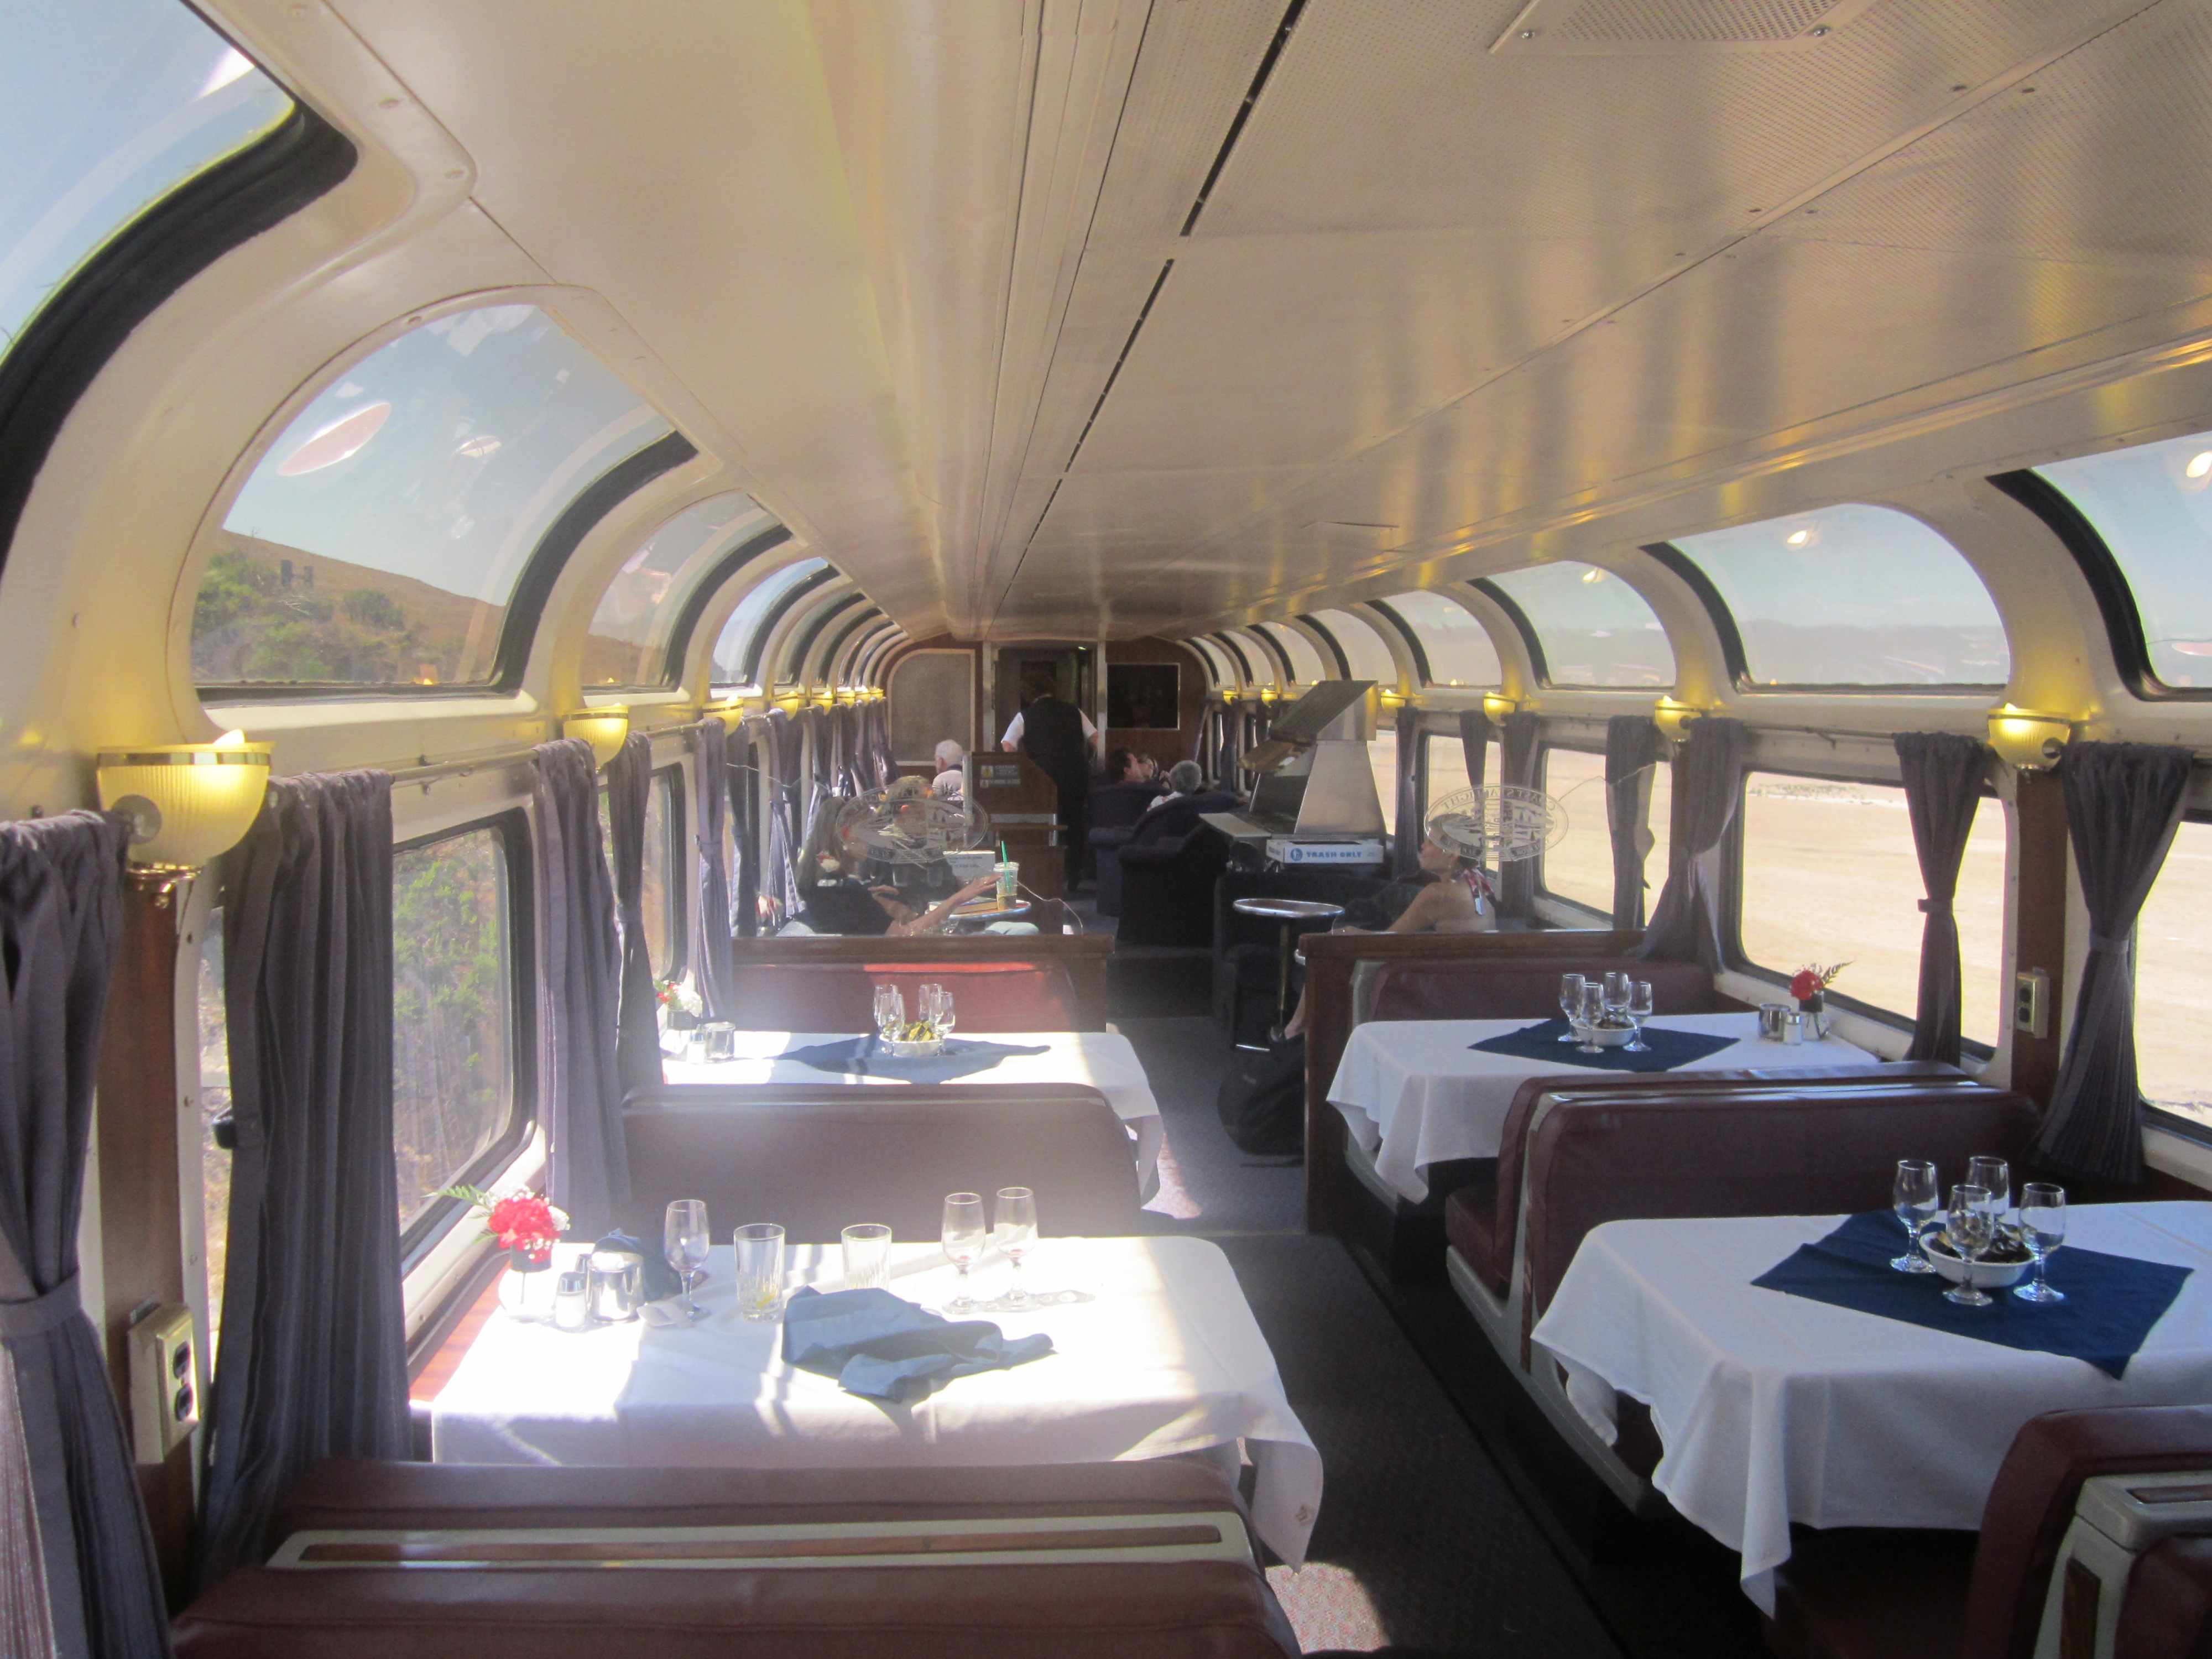 My Mega Trip Report riding Amtrak across US & on to Santiago Chile &